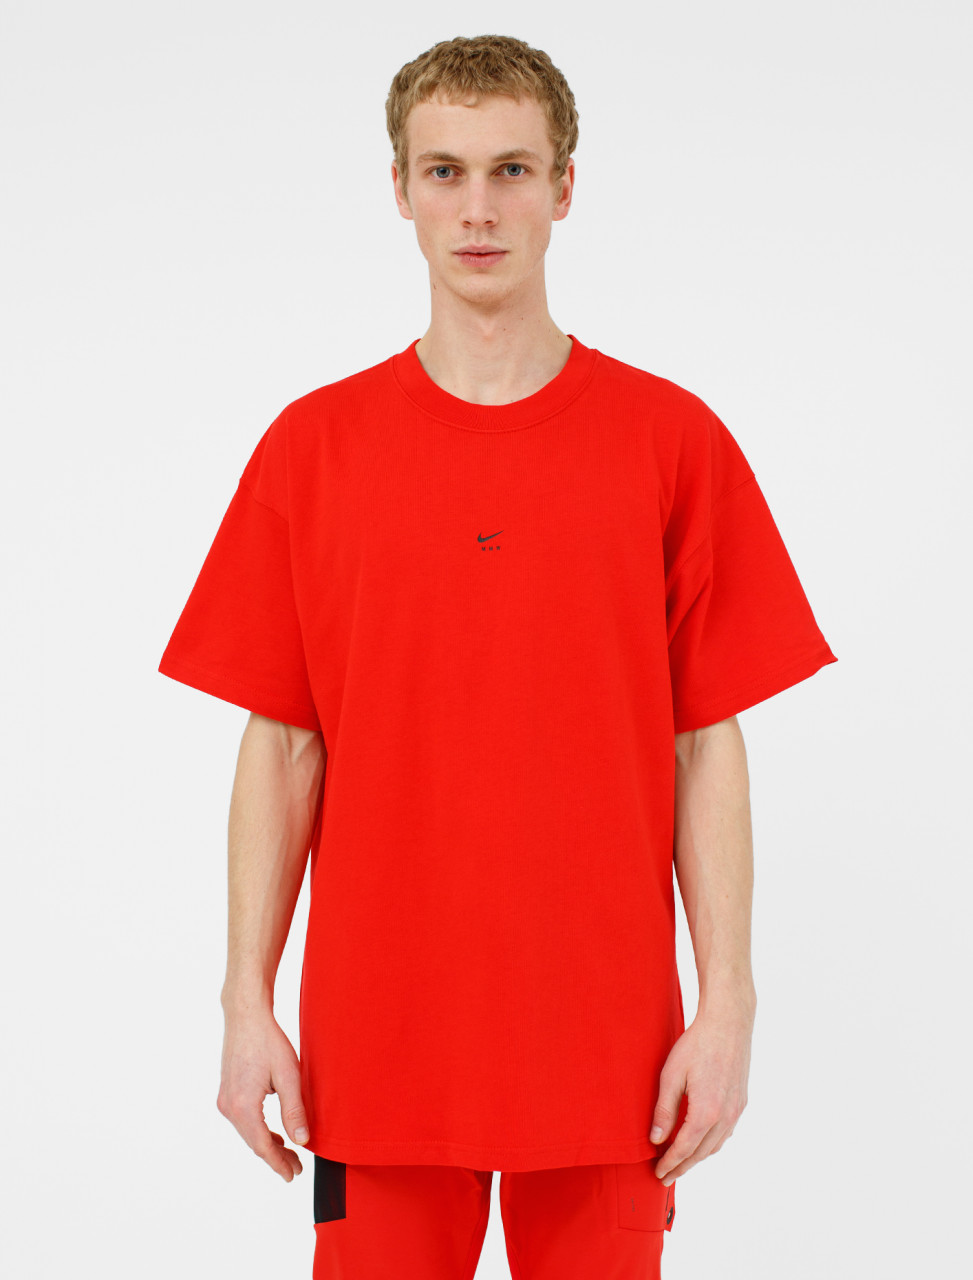 x MMW Short Sleeve T-Shirt in University Red